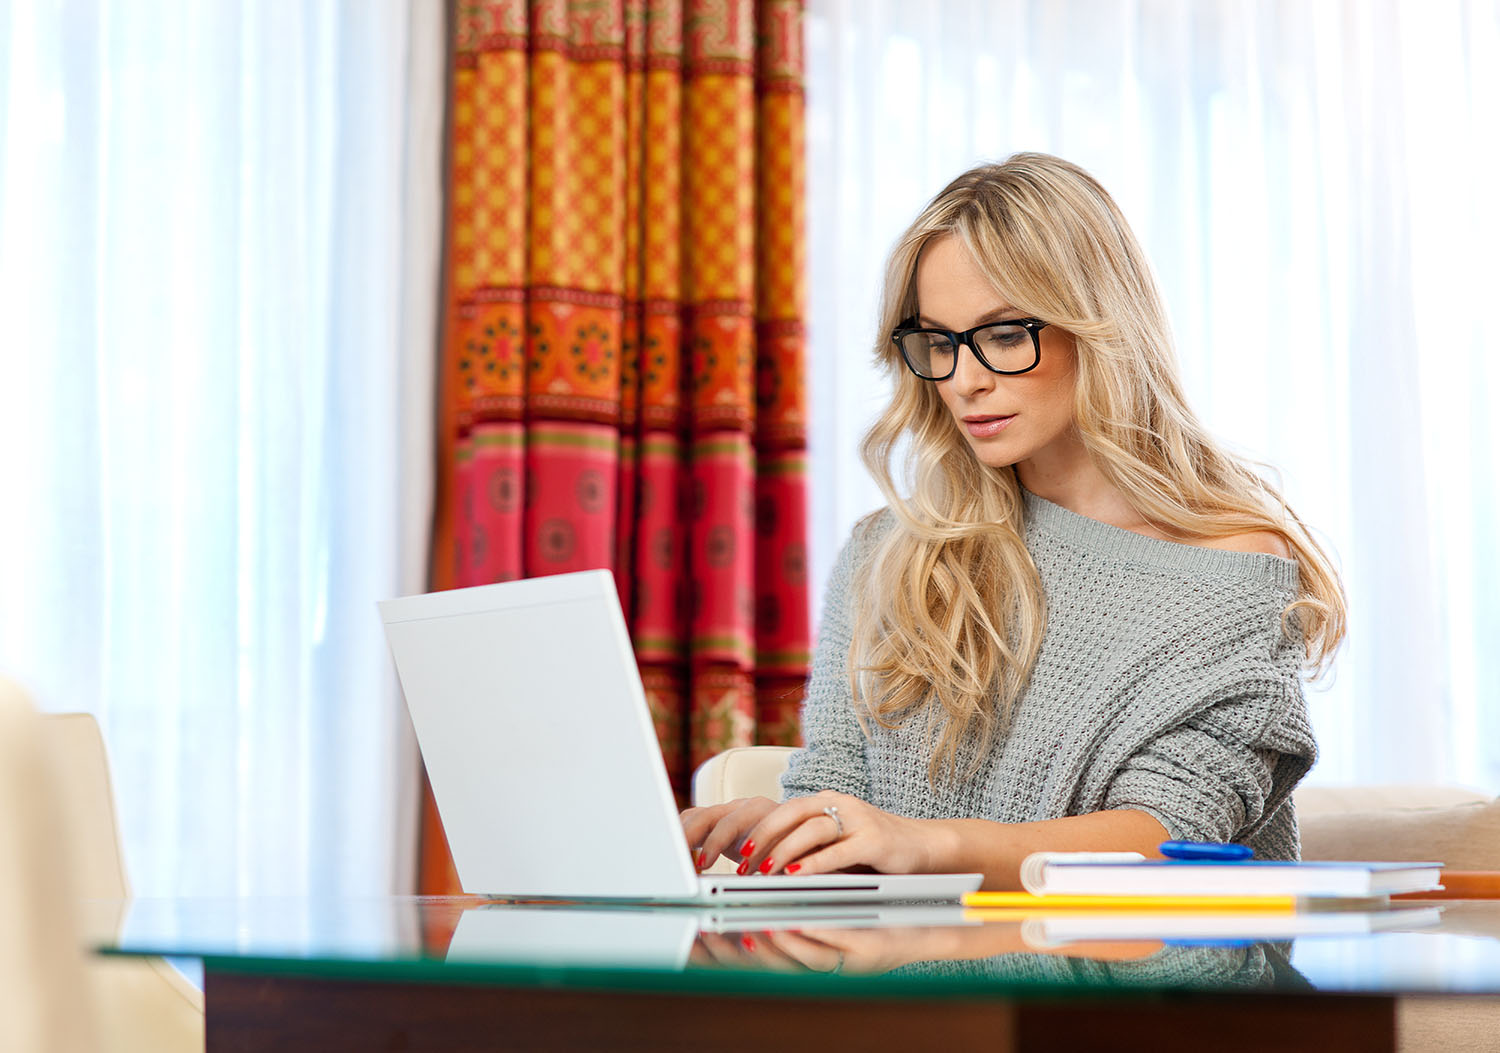 Woman looking online for medical information